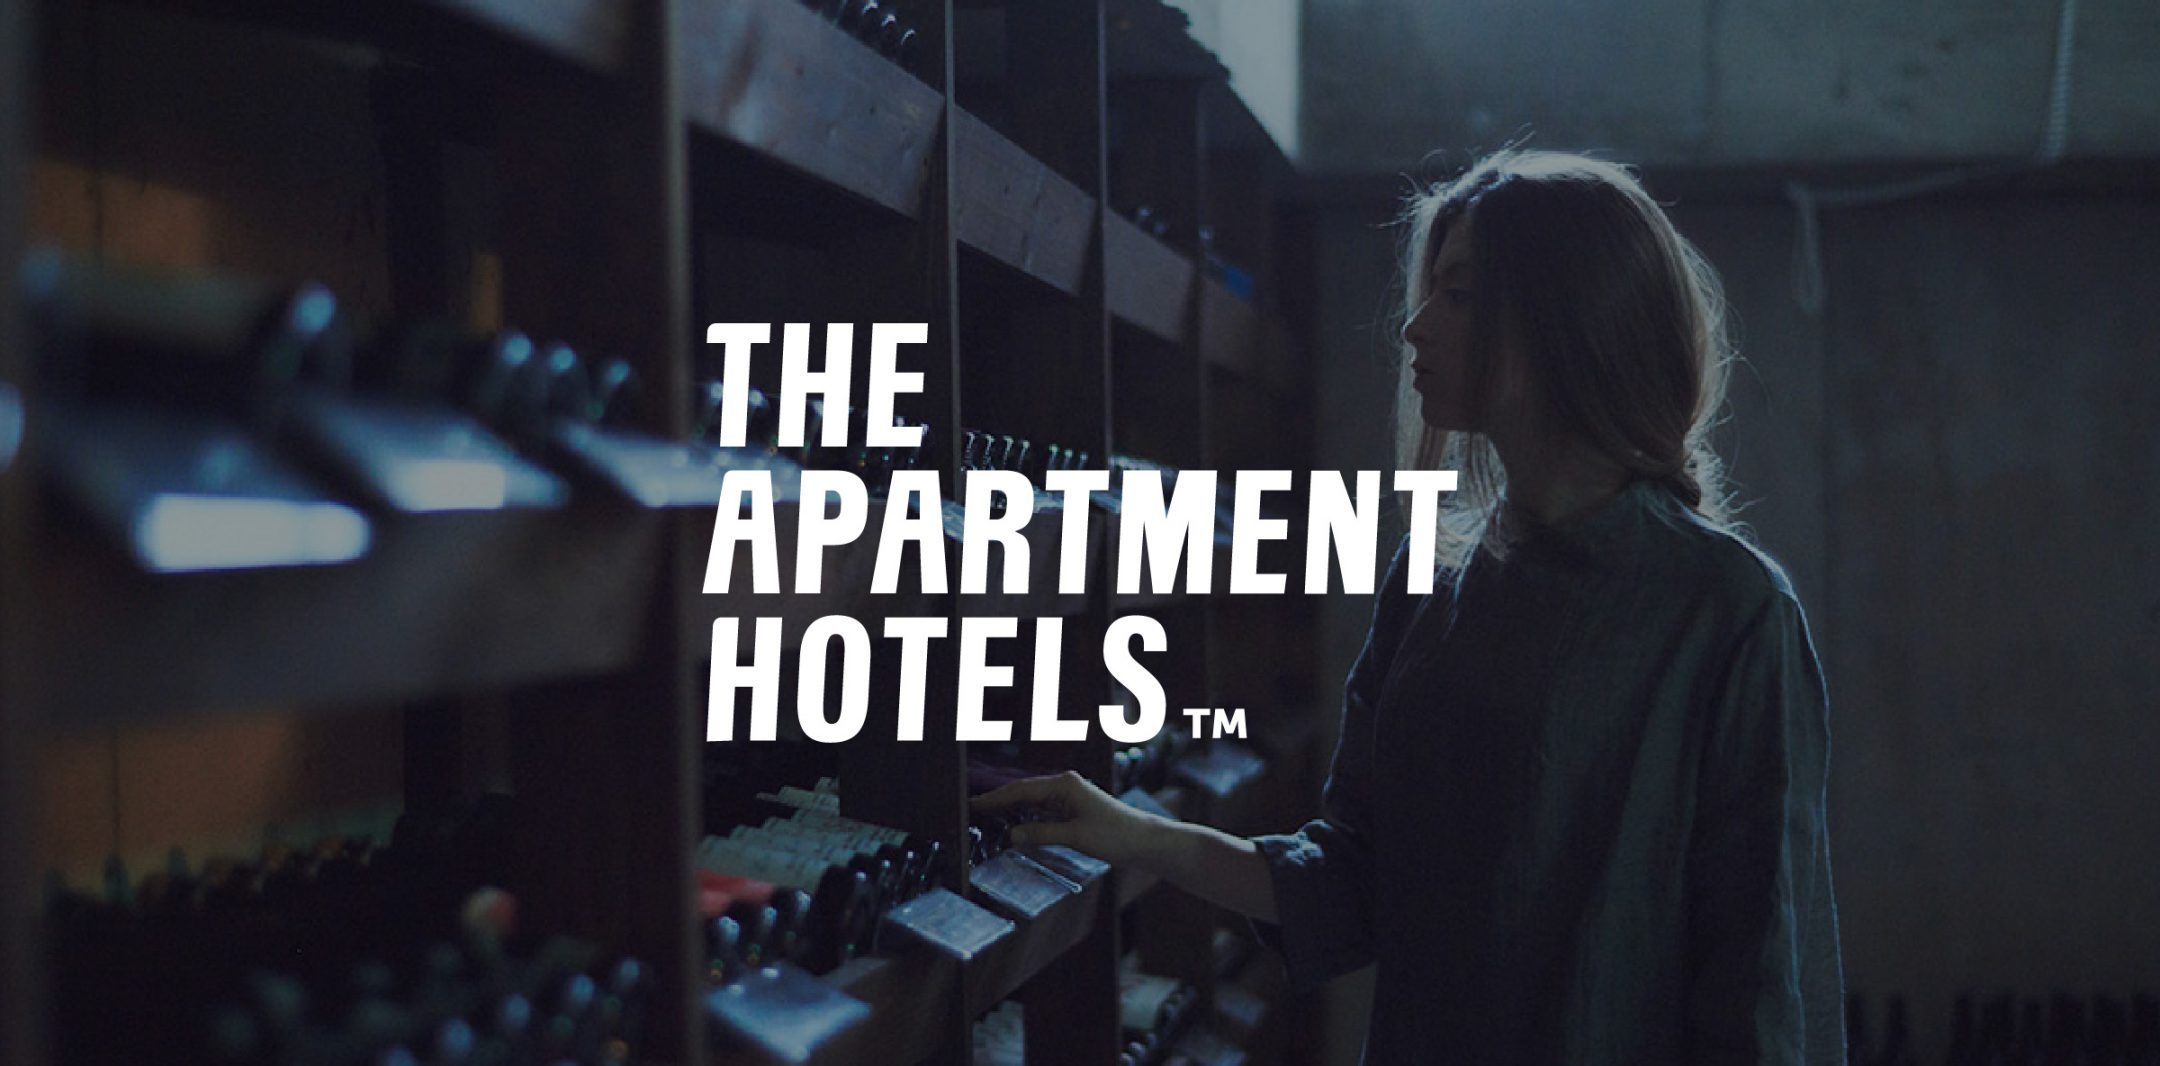 THE APARTMENT HOTELS